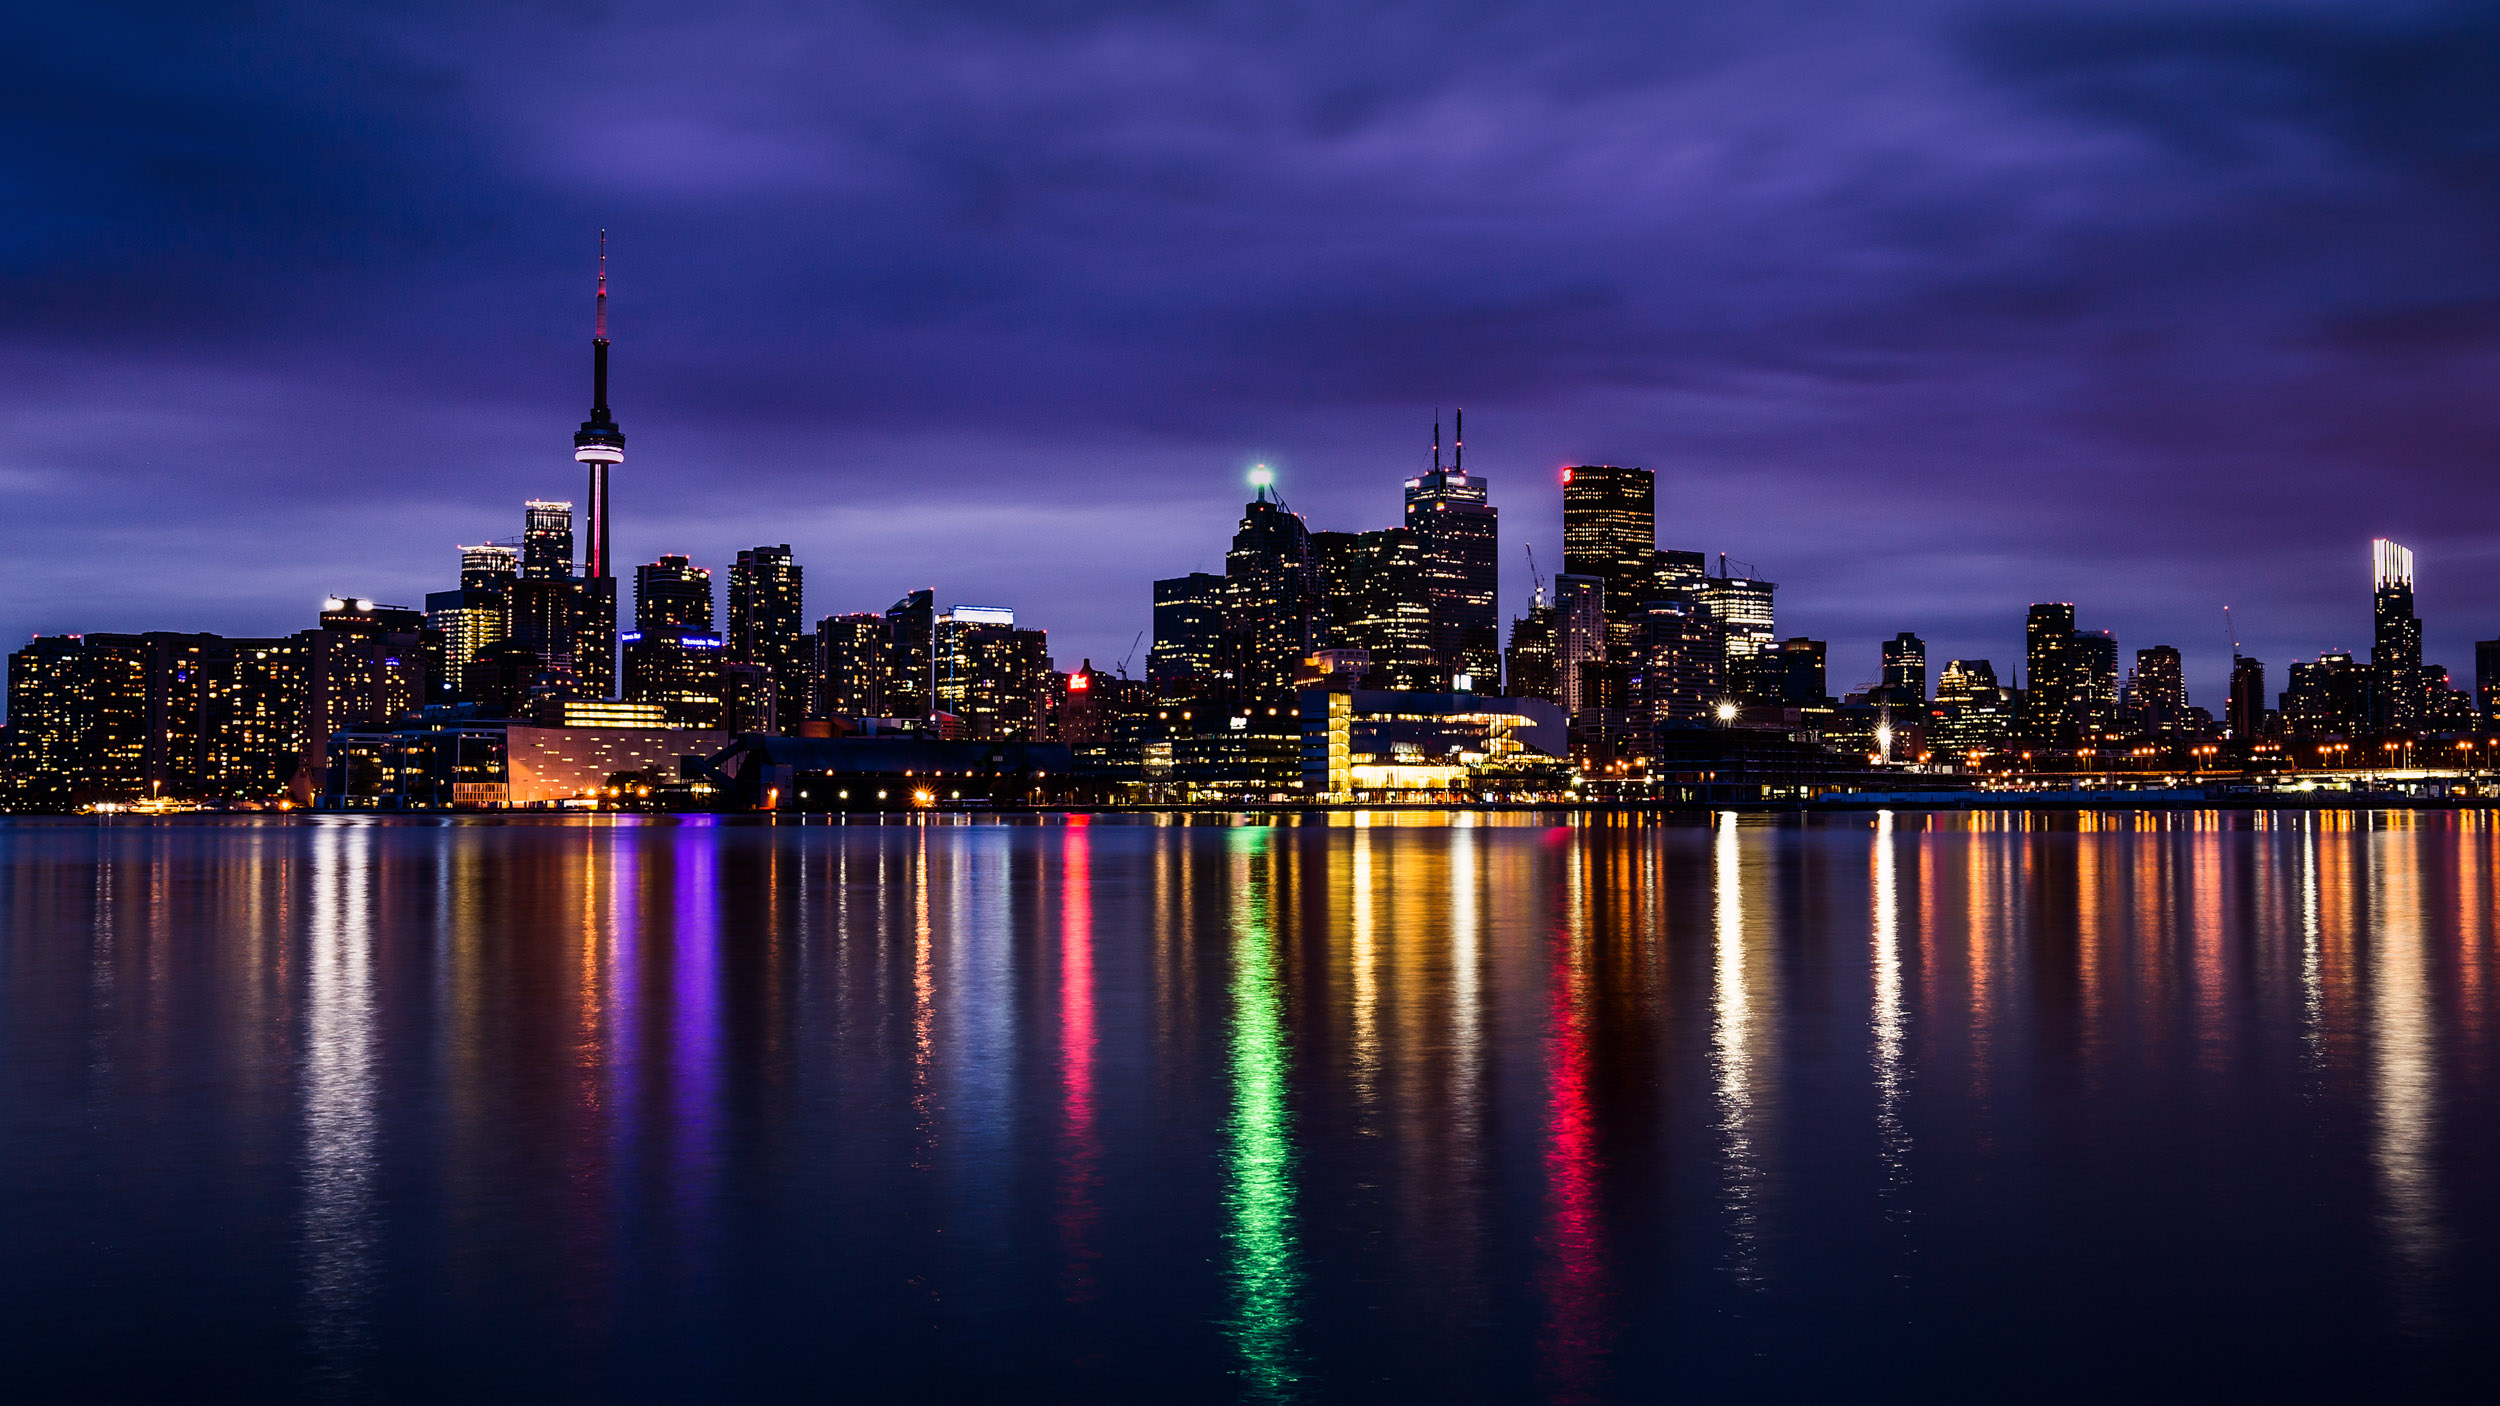 Cityscape at Night - Toronto, Canada - City Photography